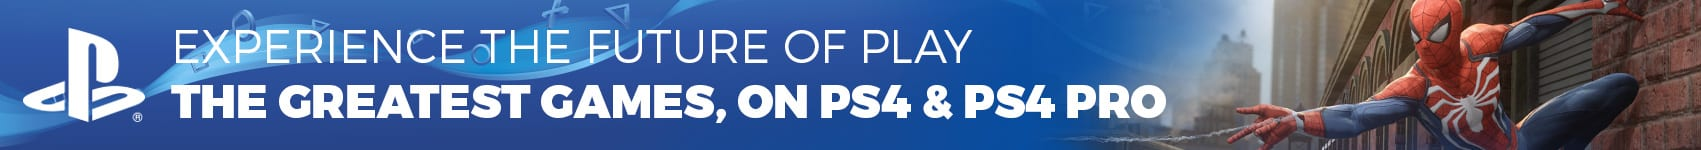 Destination PlayStation 4 At GAME.co.uk